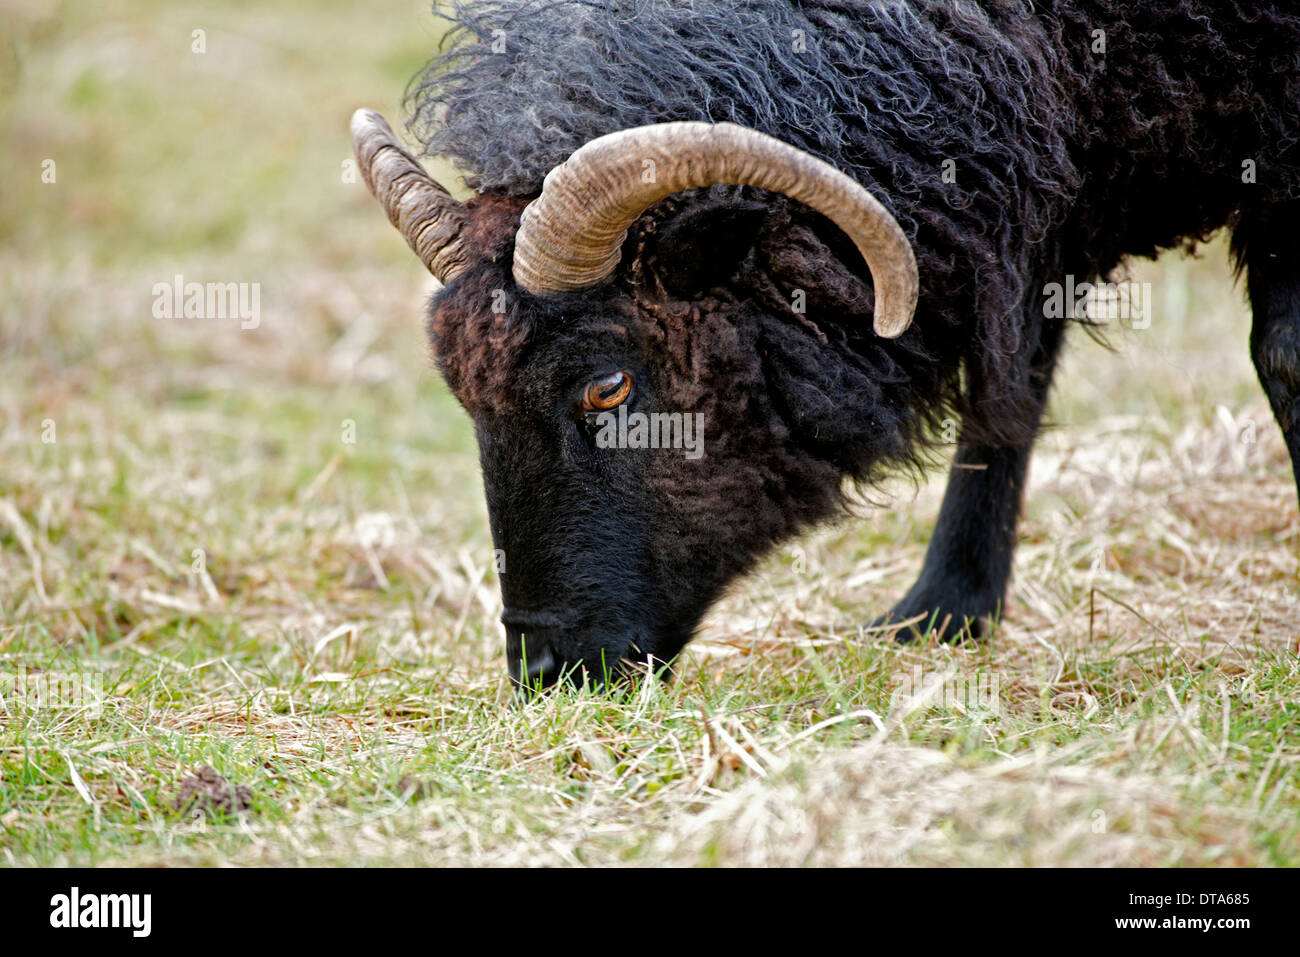 grazing; showing head. - Stock Image